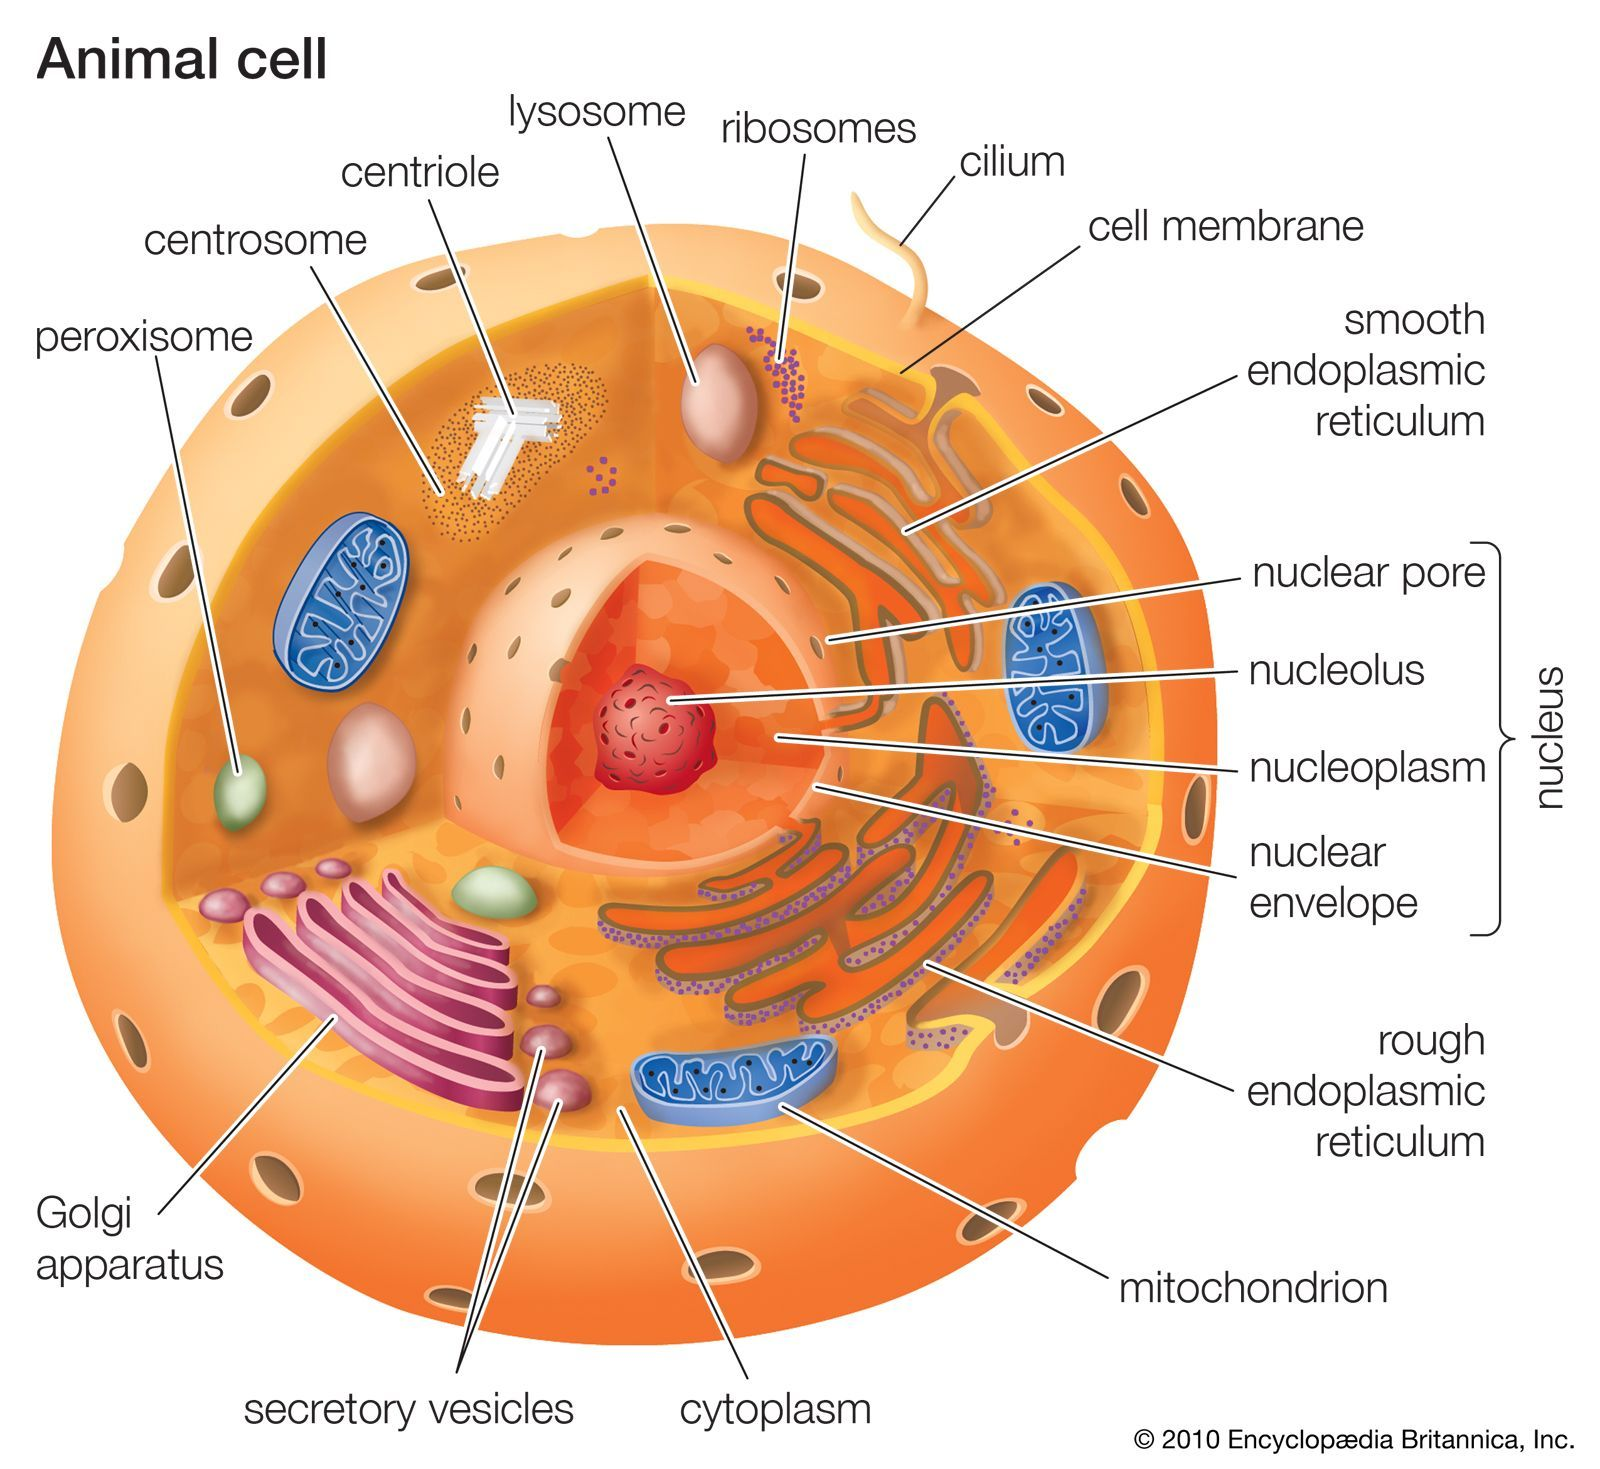 Cell clipart cell diagram. Animal biology pictures homeschool